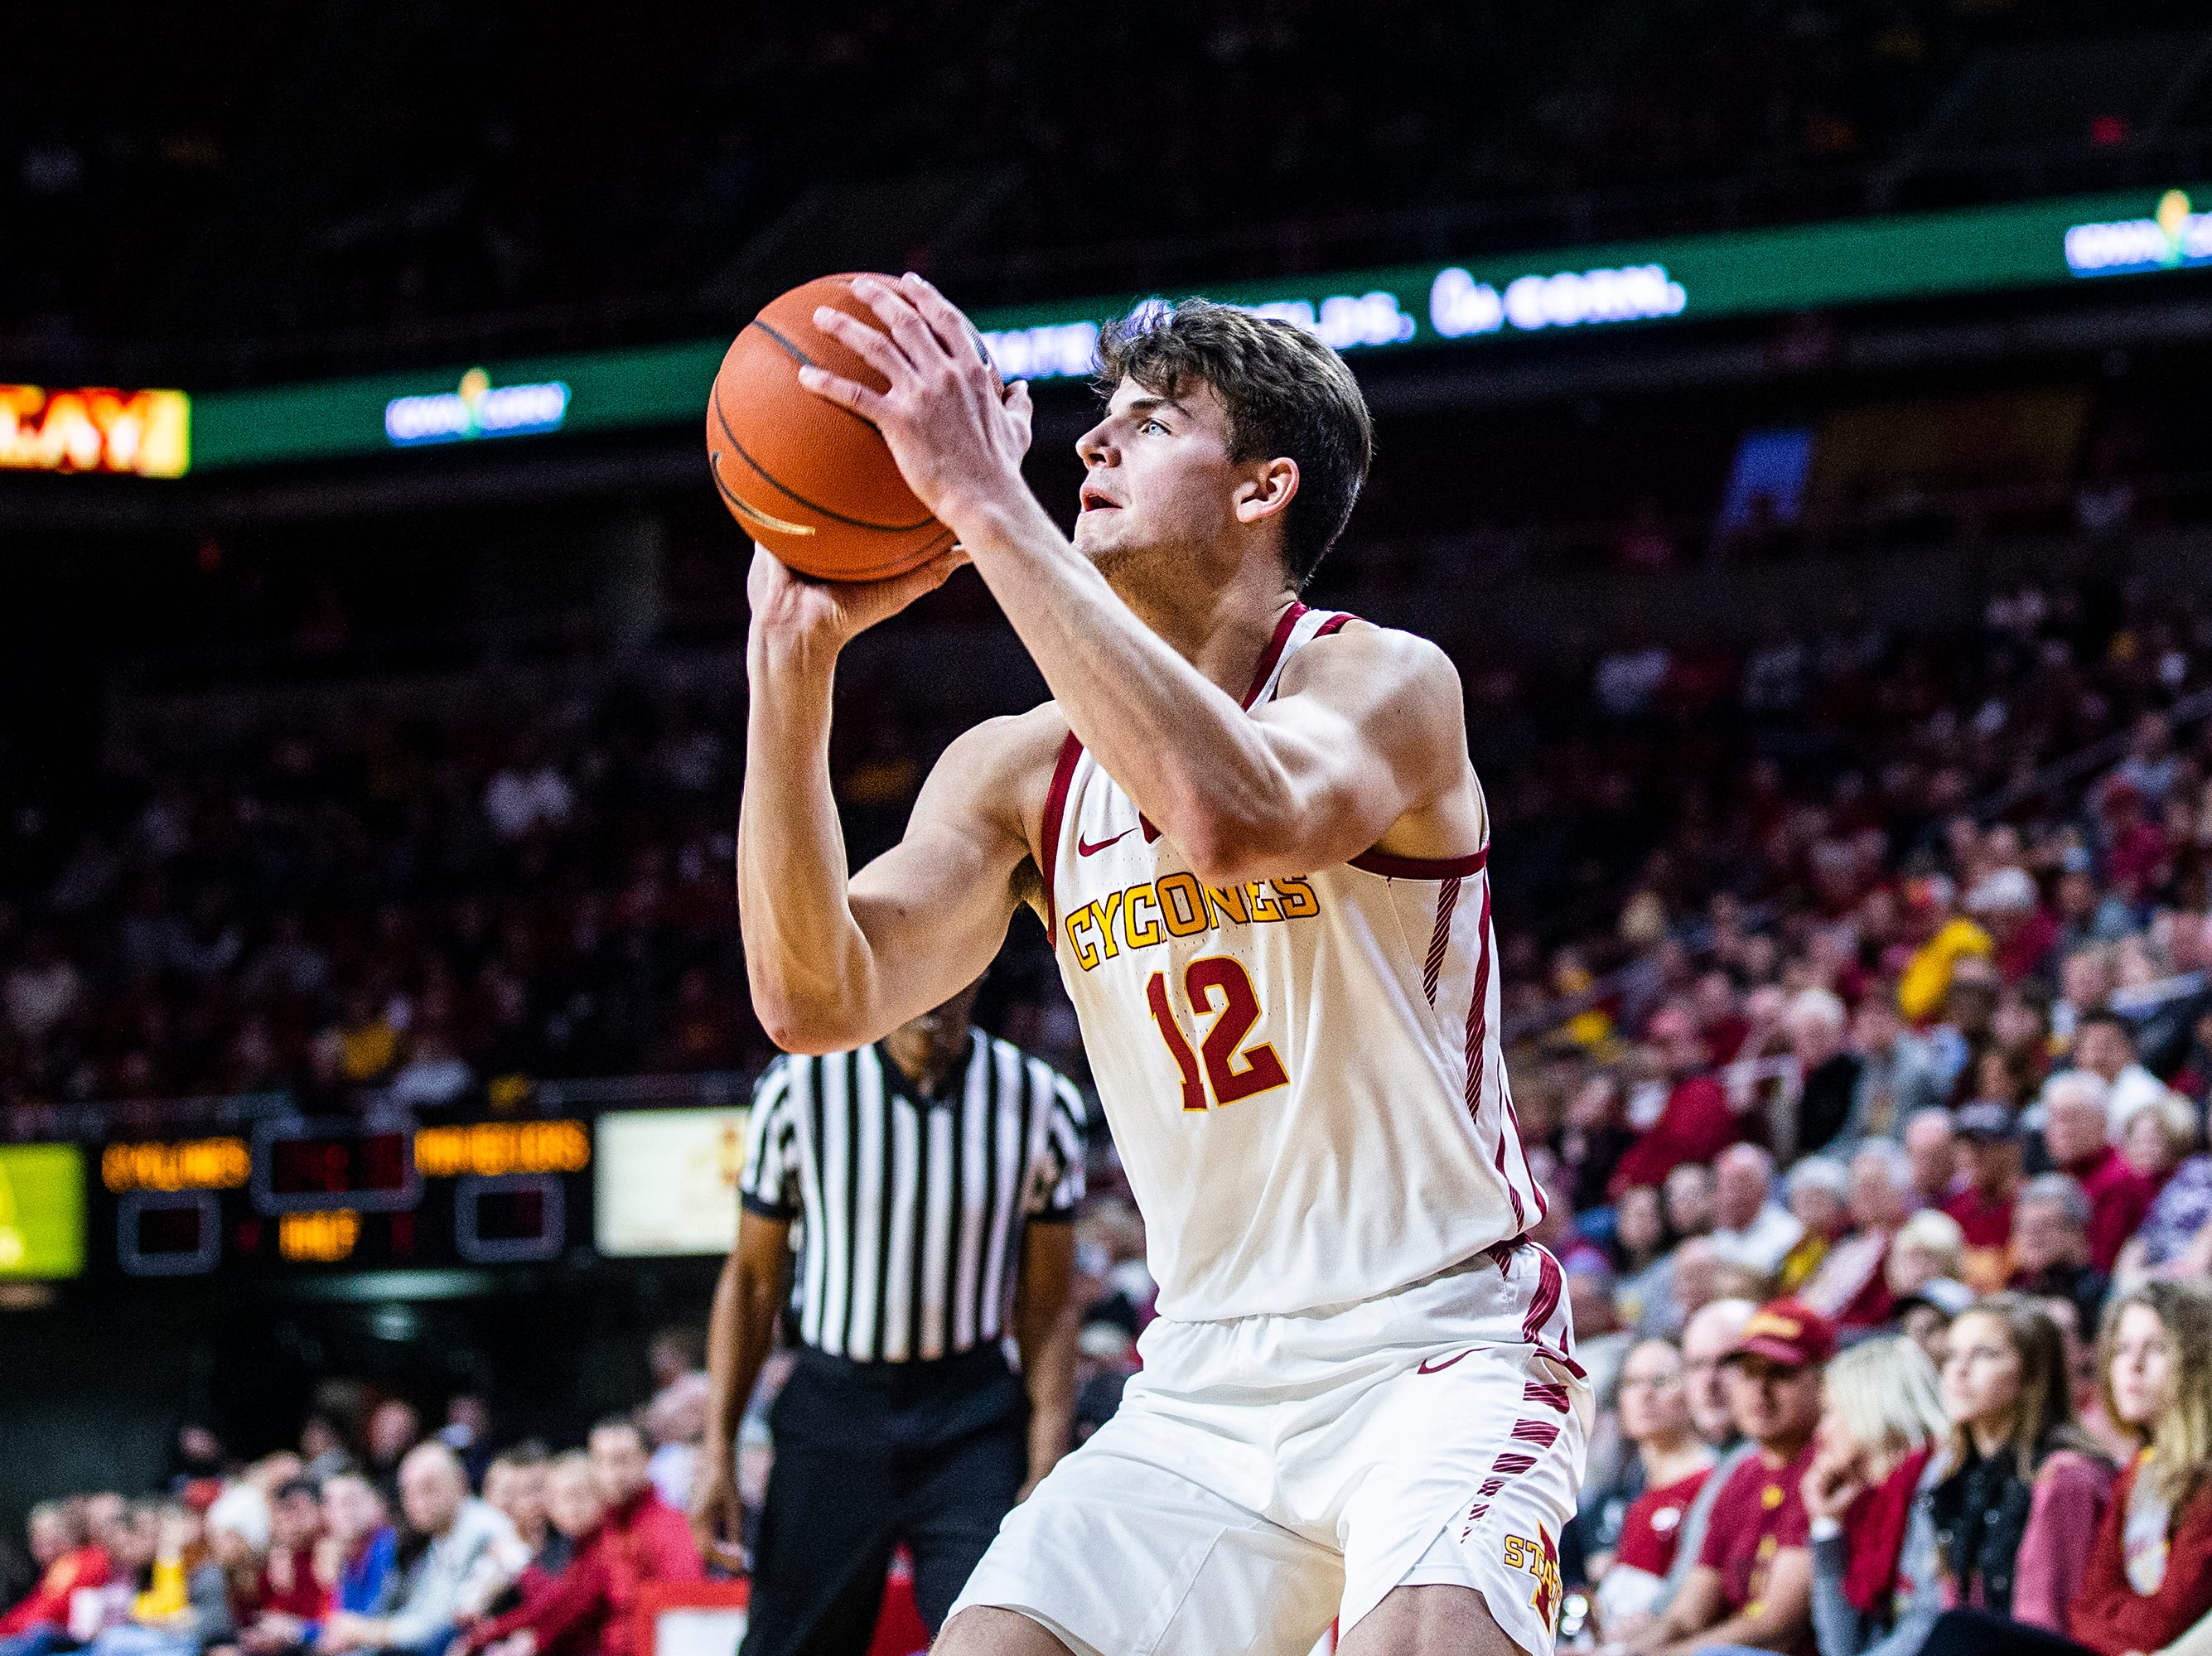 Iowa State's Michael Jacobson shoots the ball during the Iowa State men's basketball game against Omaha on Monday, Nov. 26, 2018, at Hilton Coliseum, in Ames.